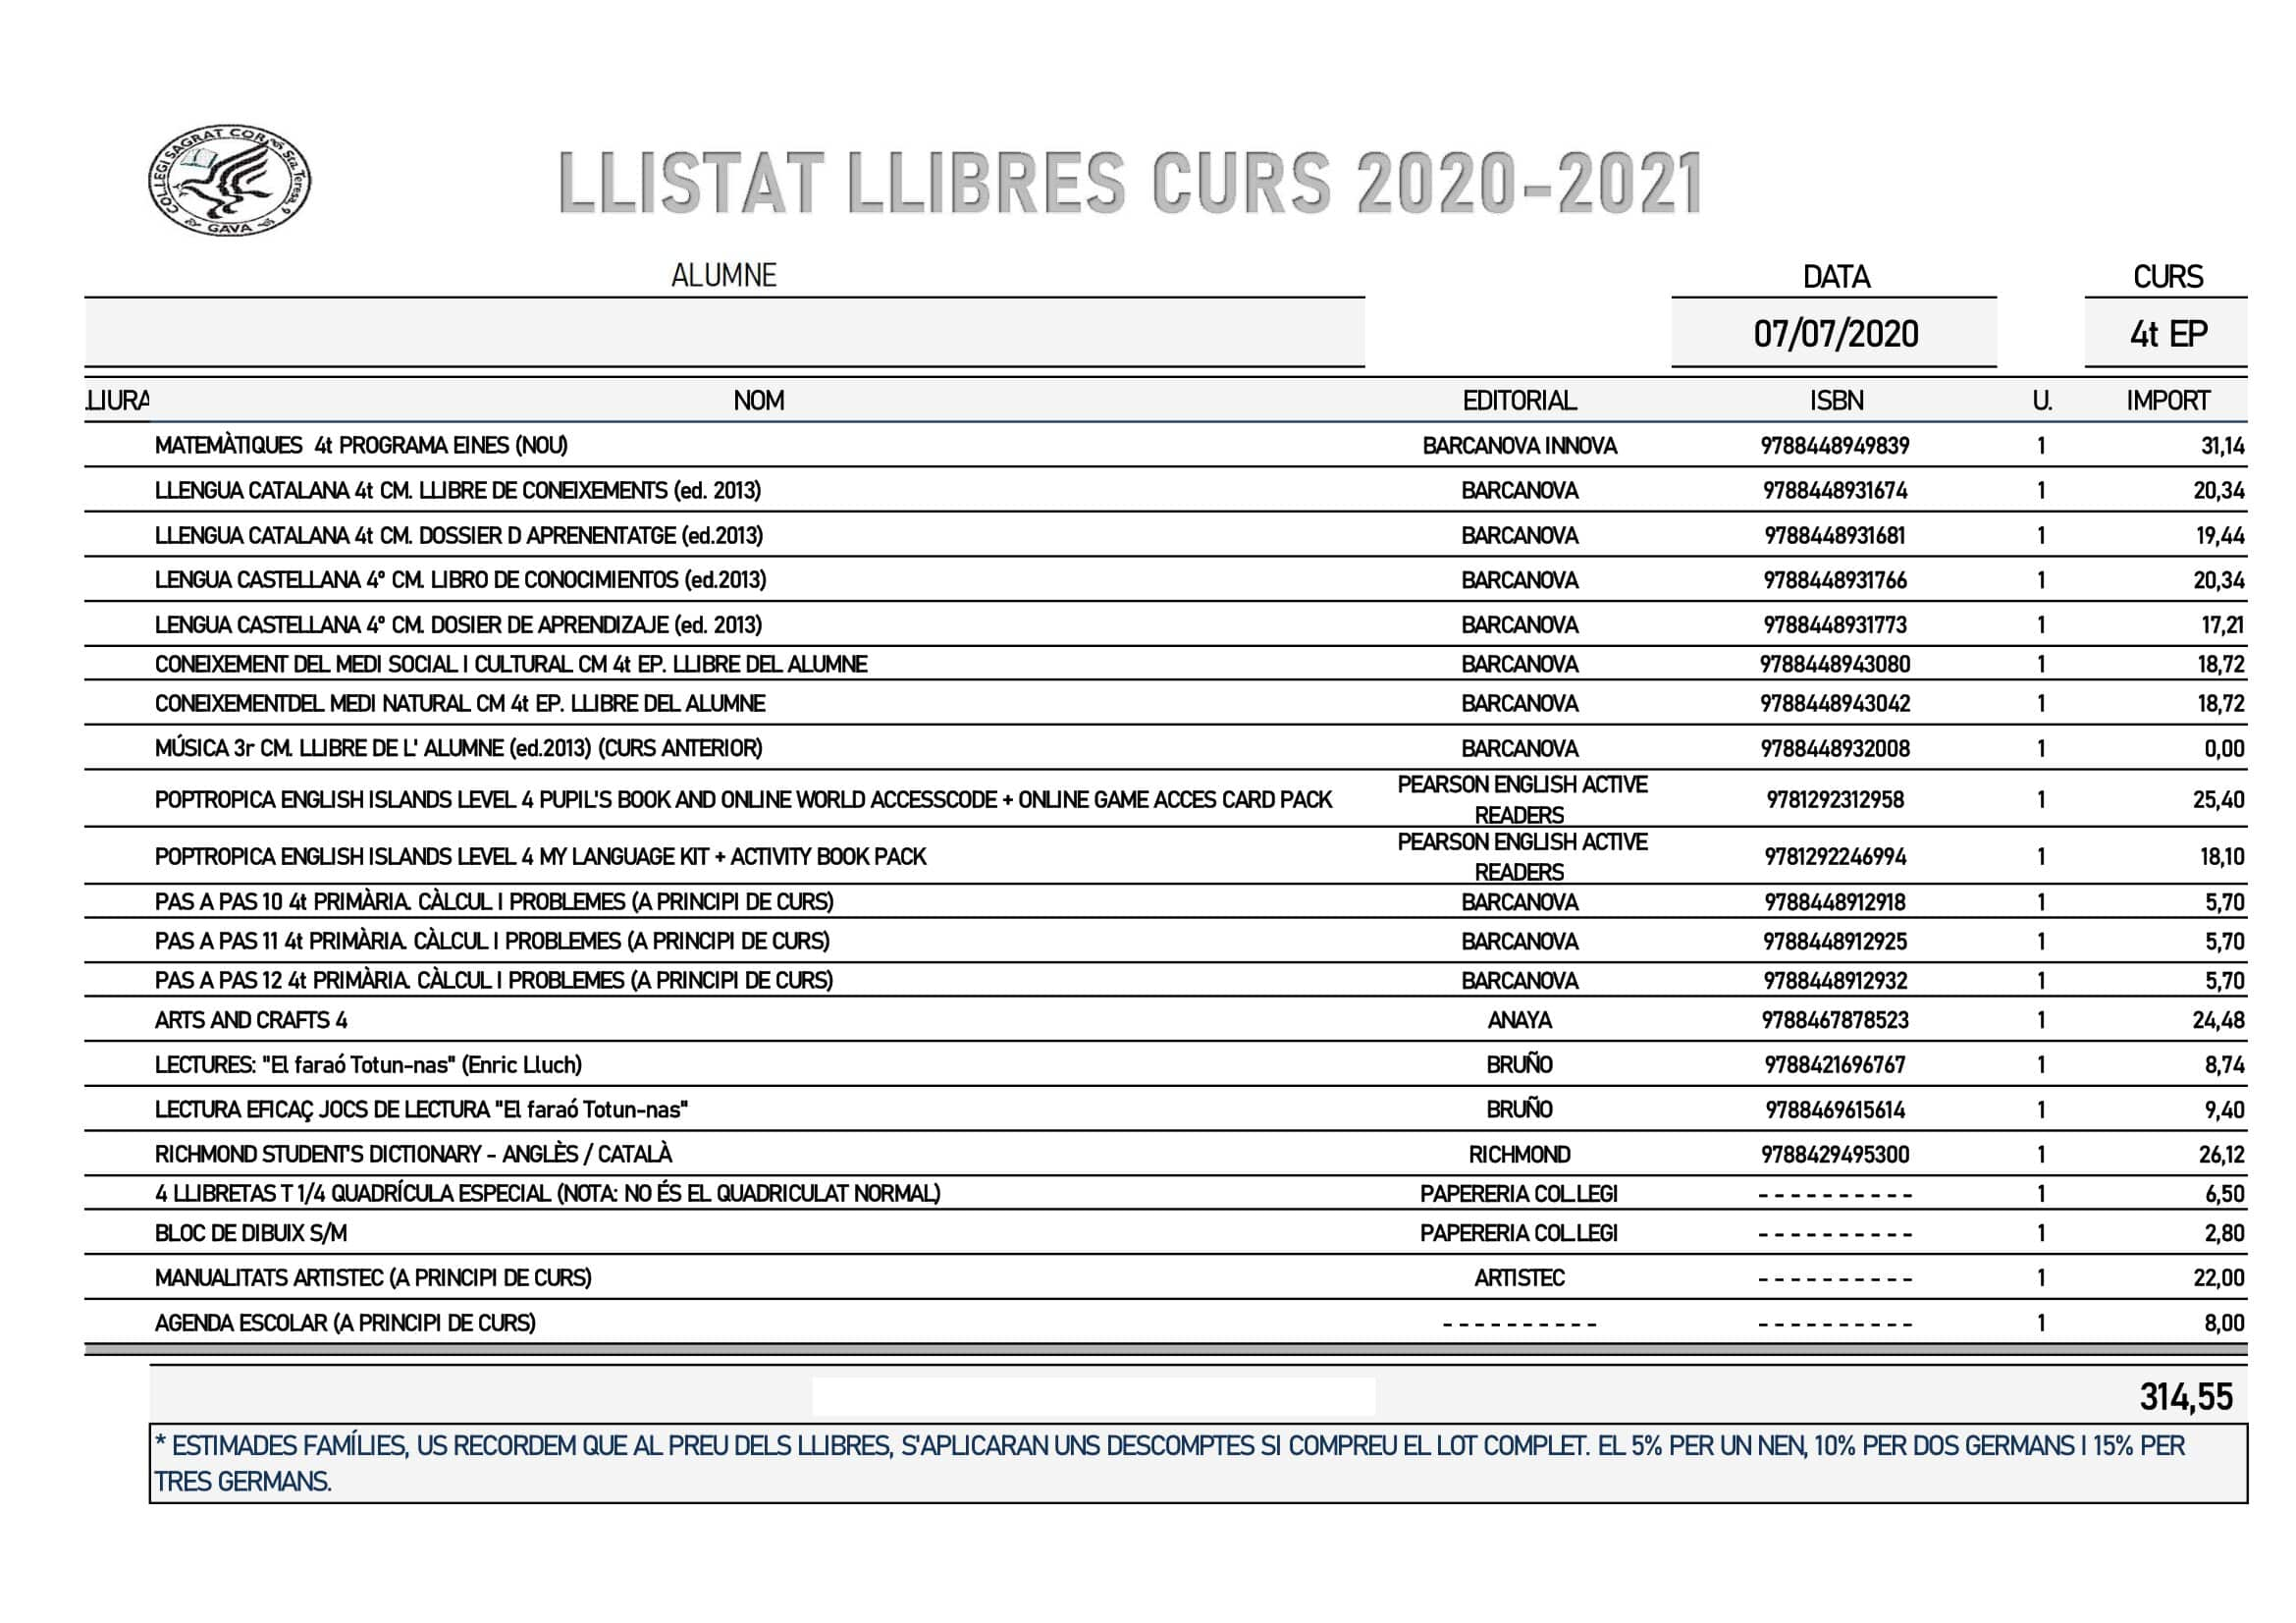 4EP CURS 2020 2021